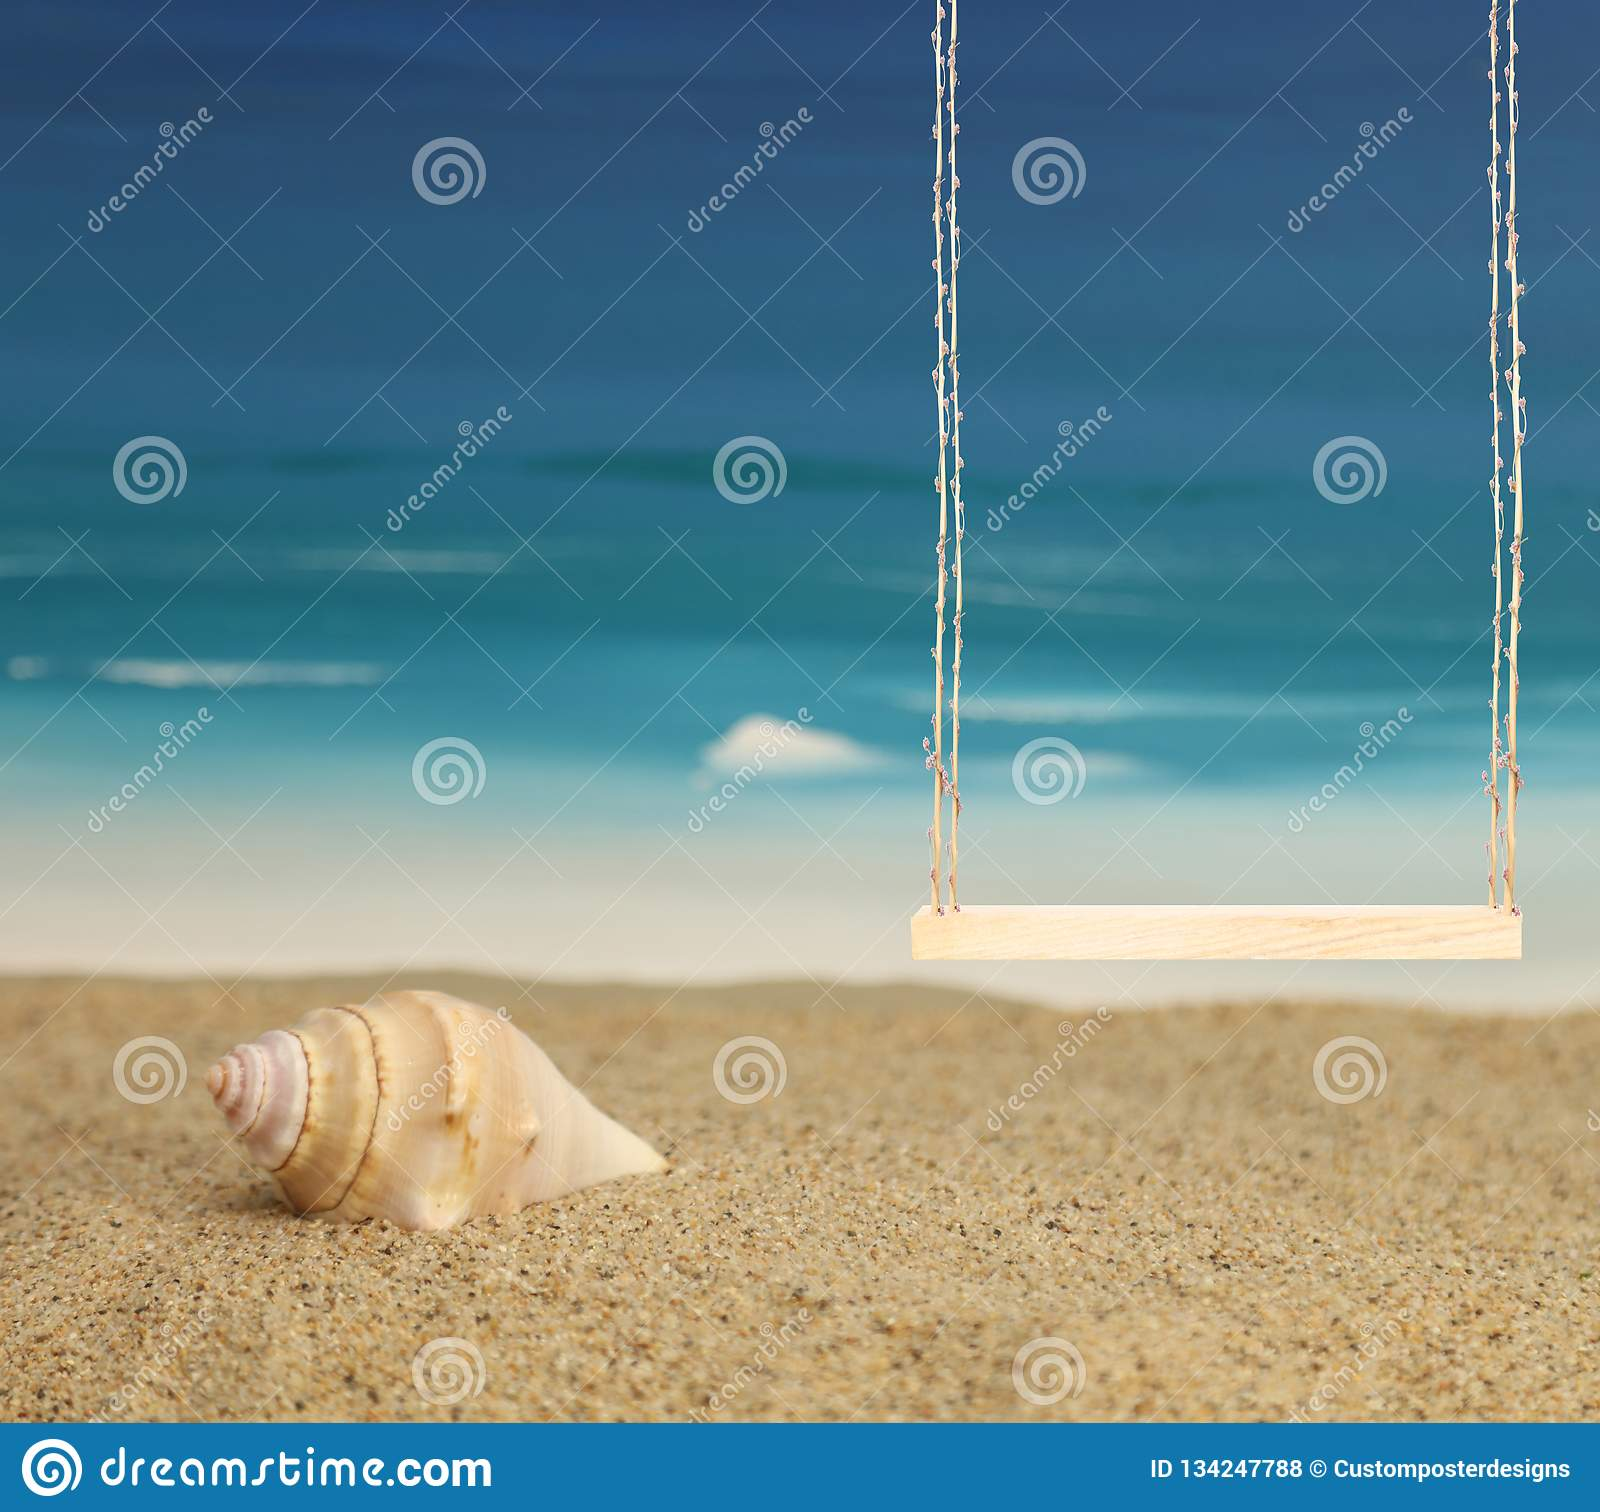 A beach background with a swing for portrait photography.